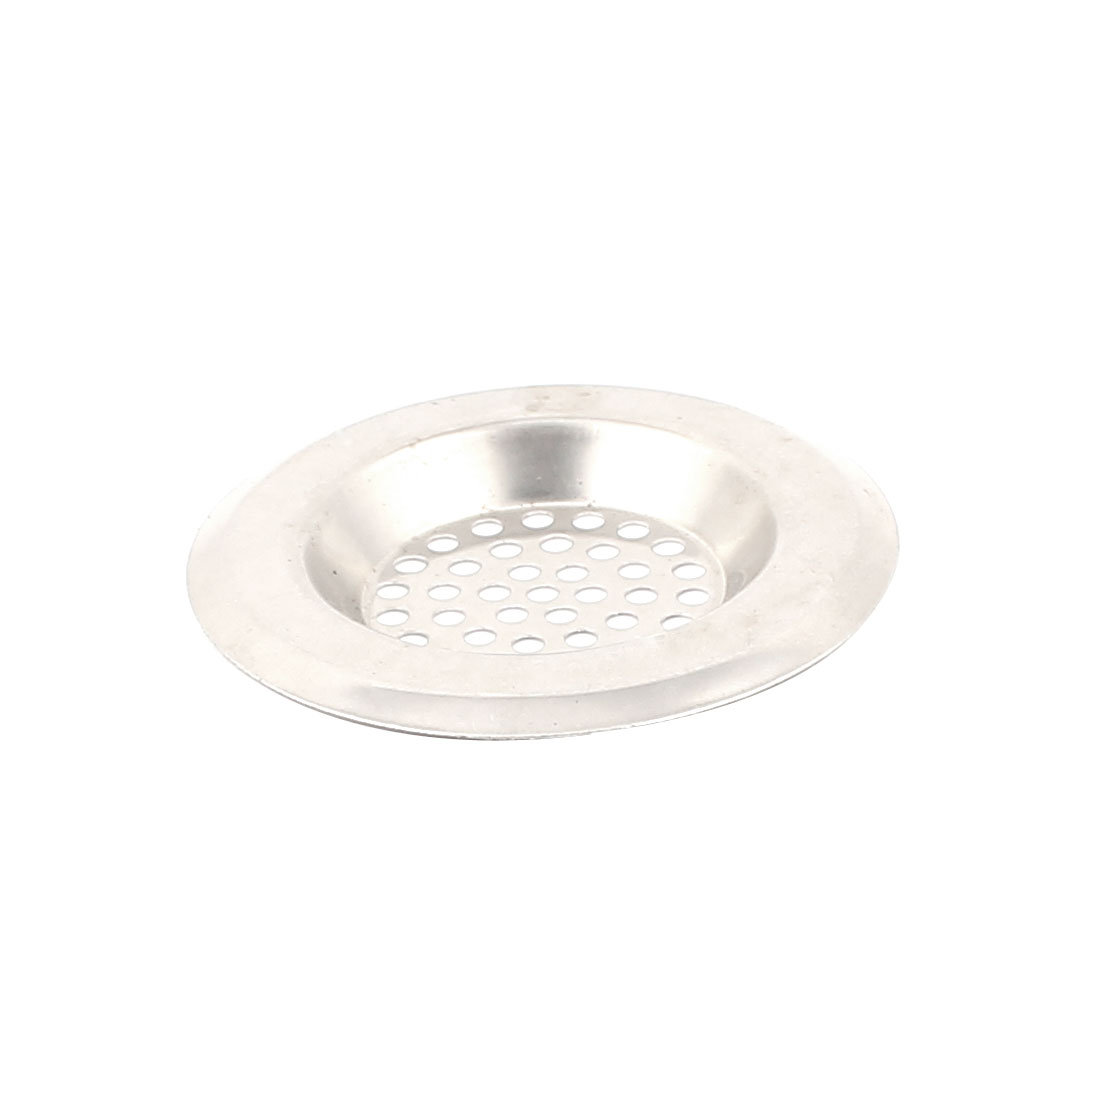 Home Kitchen Stainless Steel Mesh Sink Strainer Water Drain Disposal